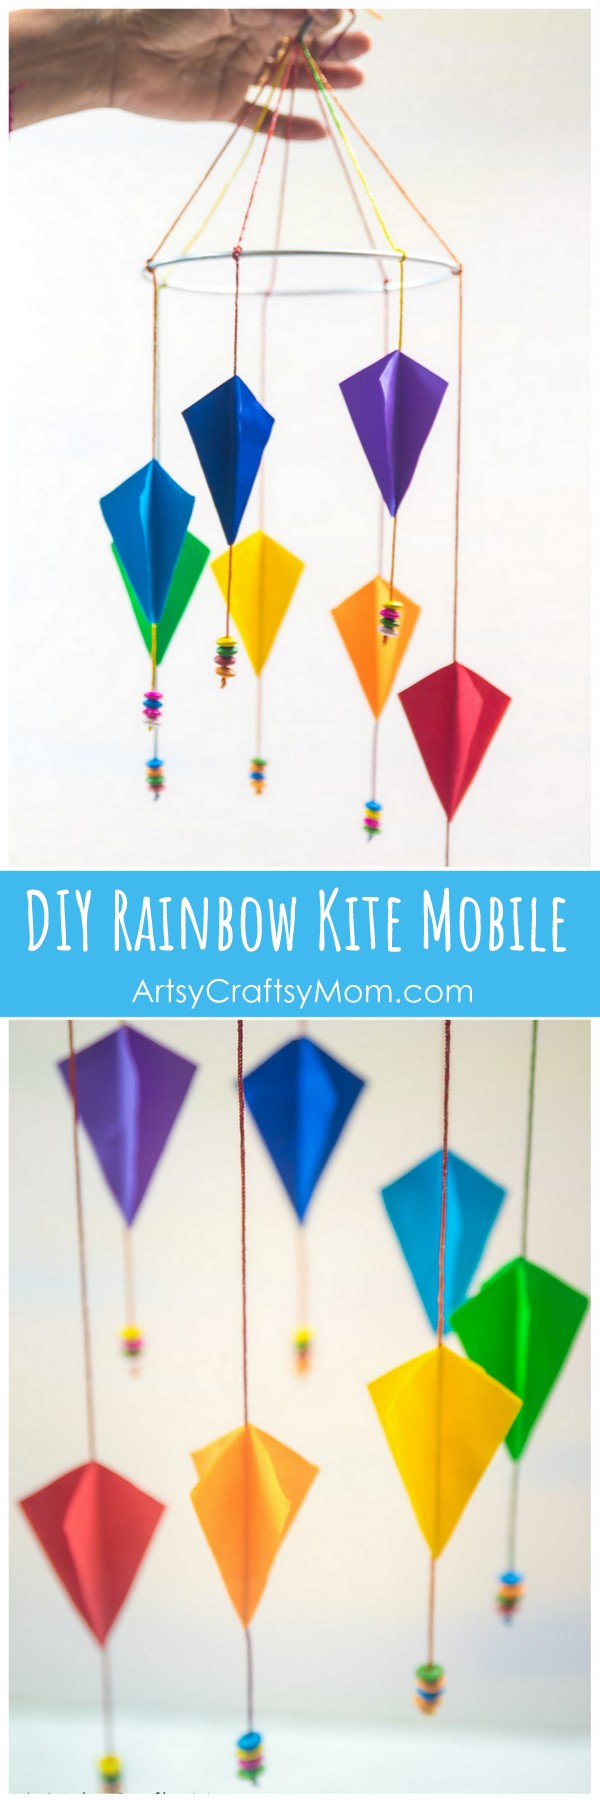 Sankranti craft for kids diy paper kite mobile artsy craftsy mom easy step by step instructions on how to make this sankranti craft for kids diy jeuxipadfo Image collections